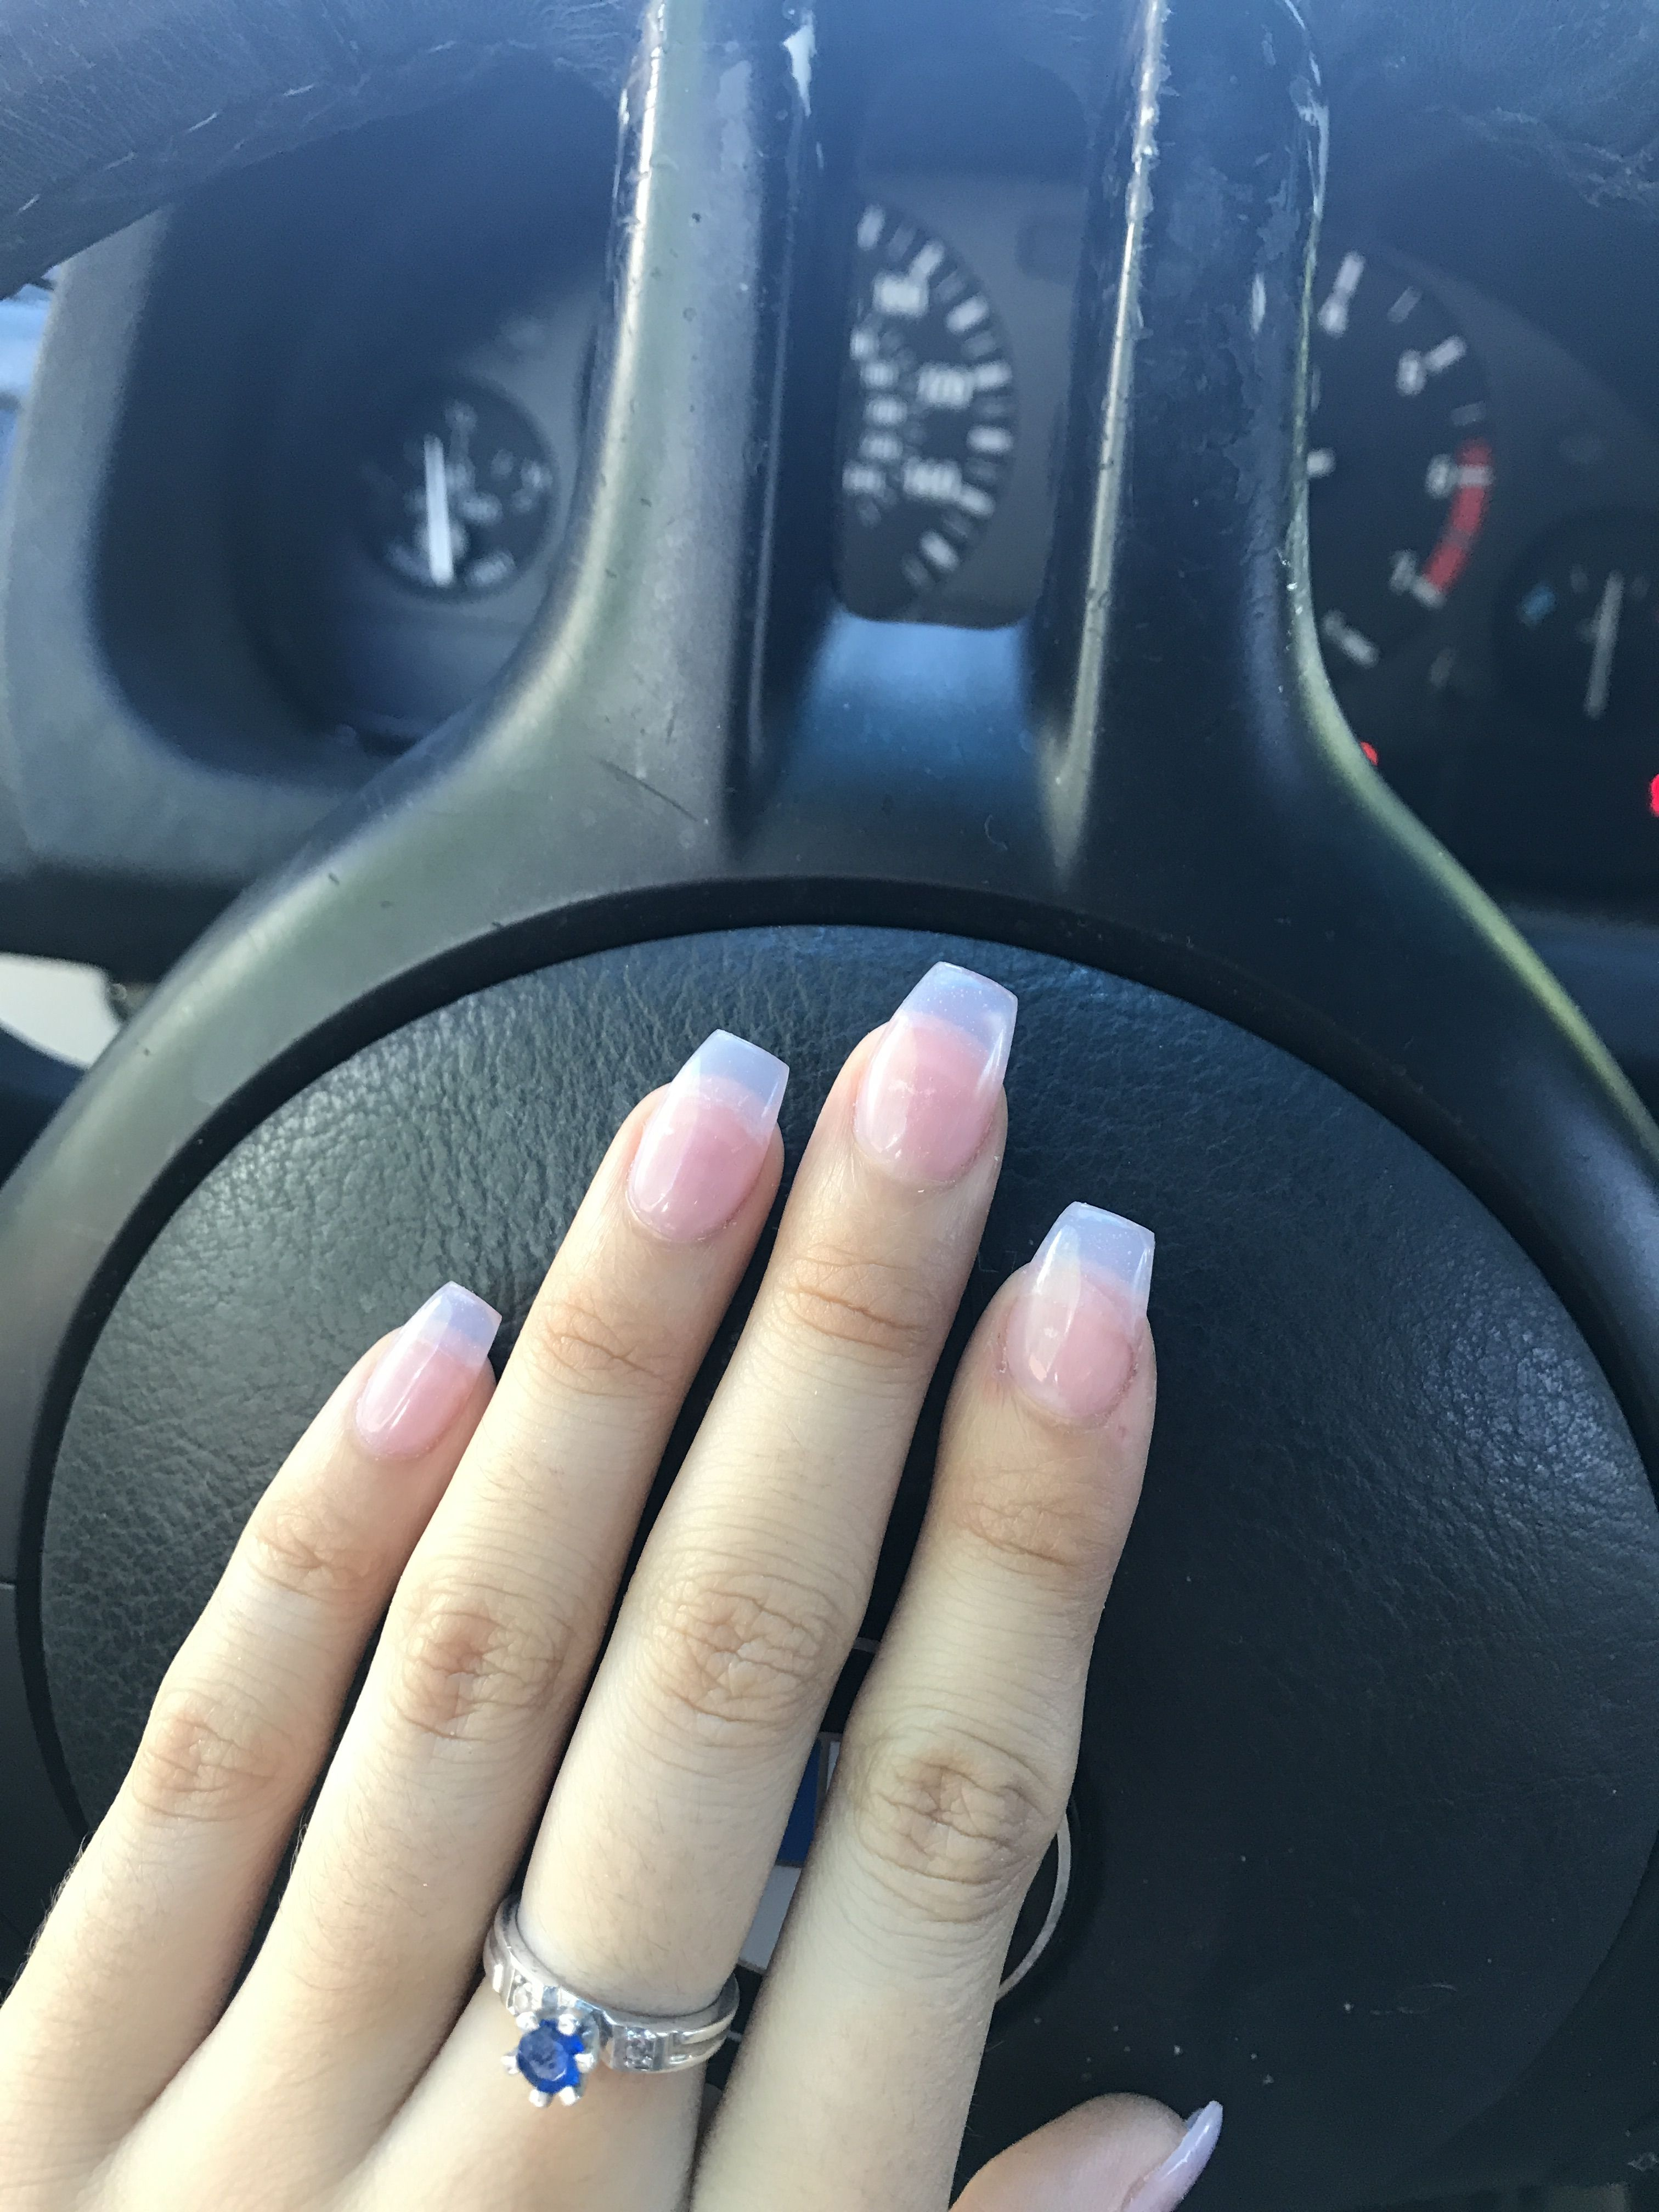 Clear Coffin Shaped Medium Length Acrylics My Number One Choice For Go To Nails Abbieramirez97 Done Clear Acrylic Nails Acrylic Nail Shapes Nail Shapes